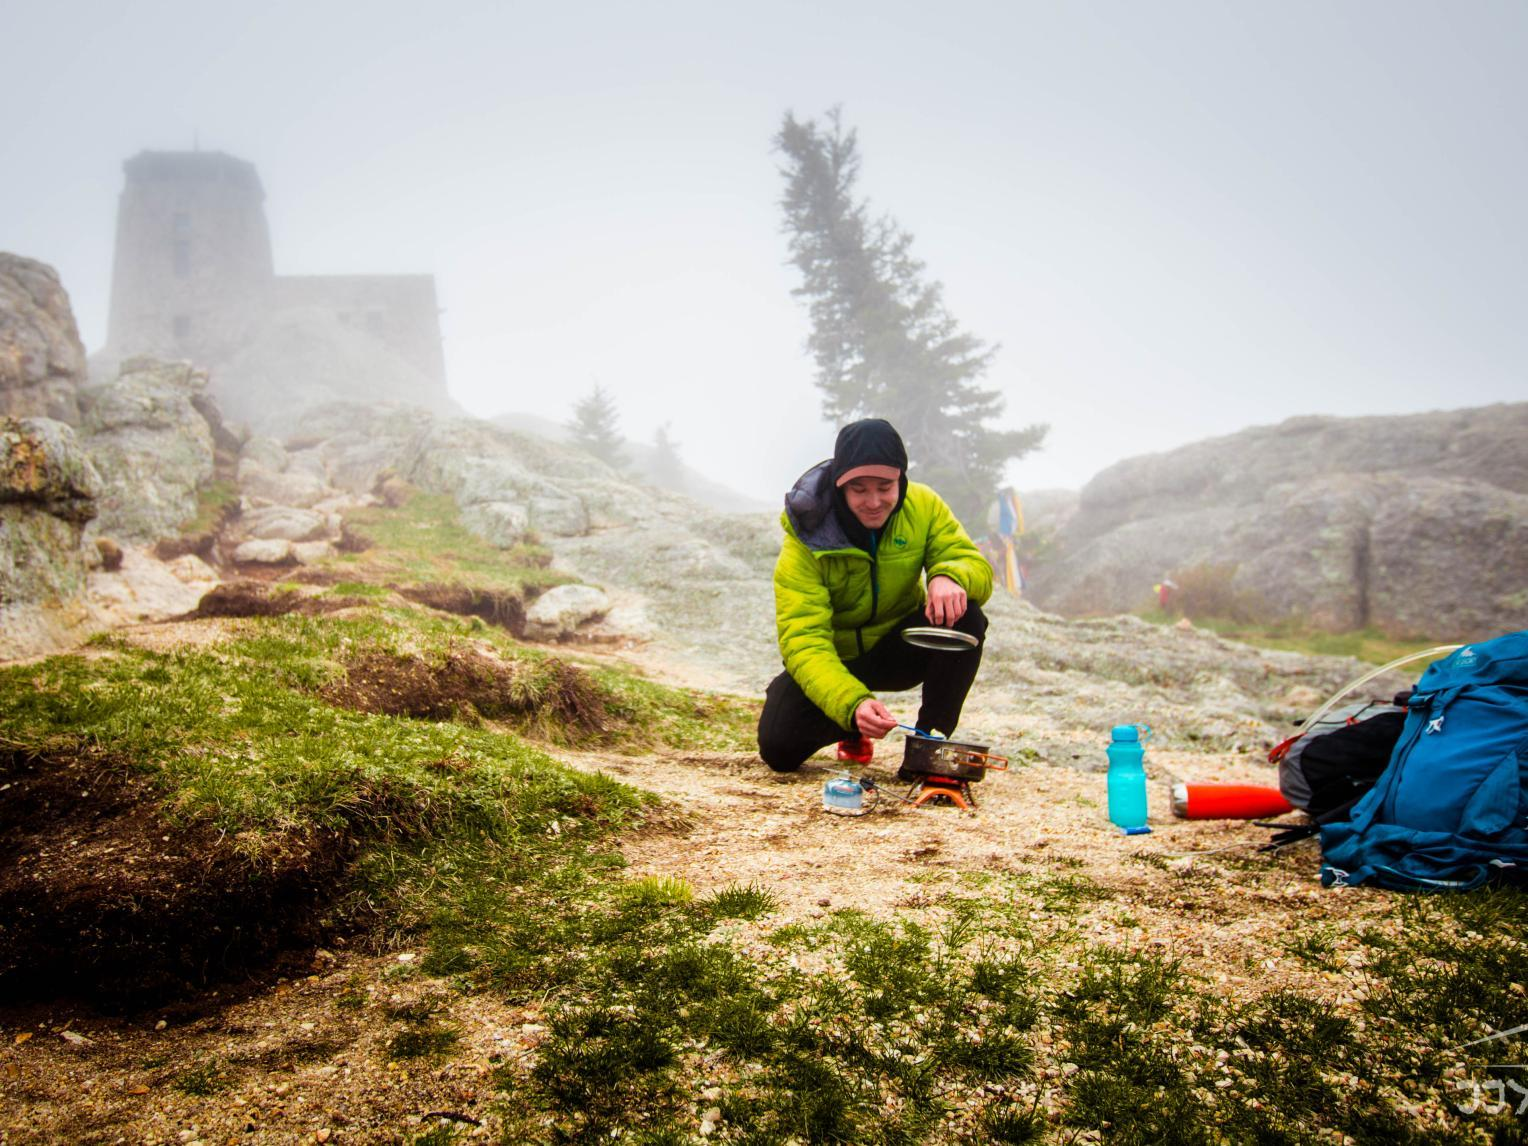 Cooking over the camp stove at Black Elk Peak